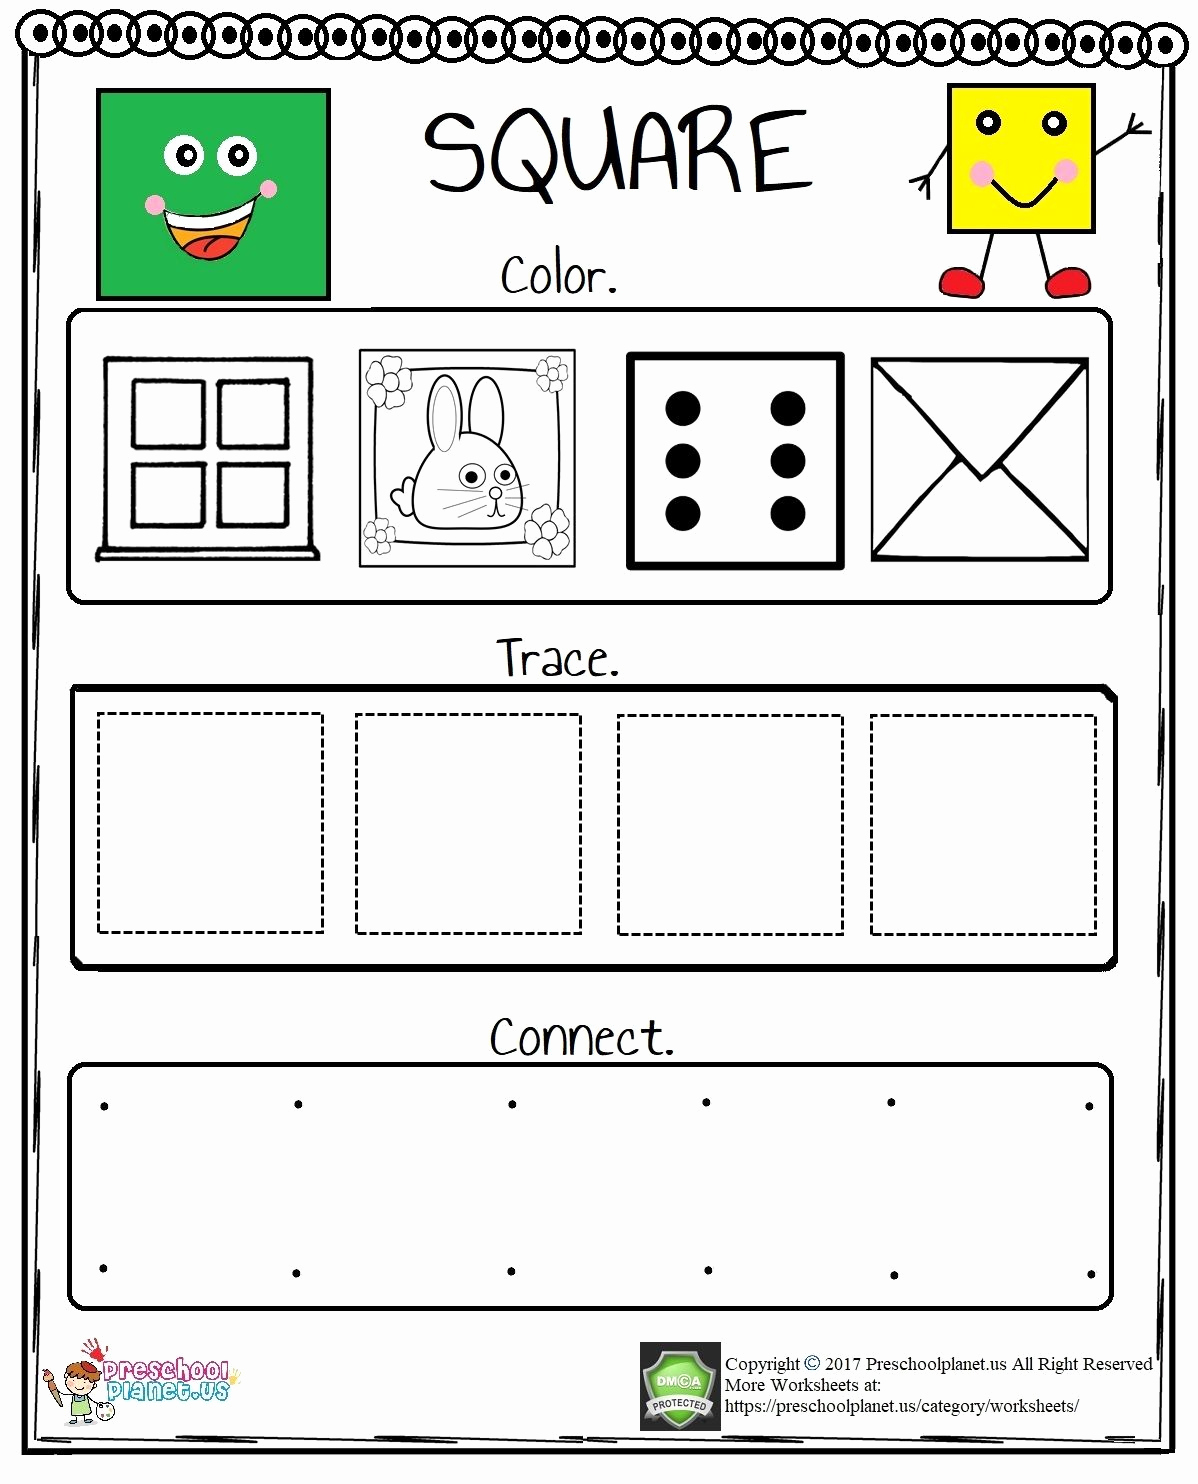 5 Senses Worksheets for Kindergarten Best Of Printable Five Senses Worksheet – Preschoolplanet In 2020